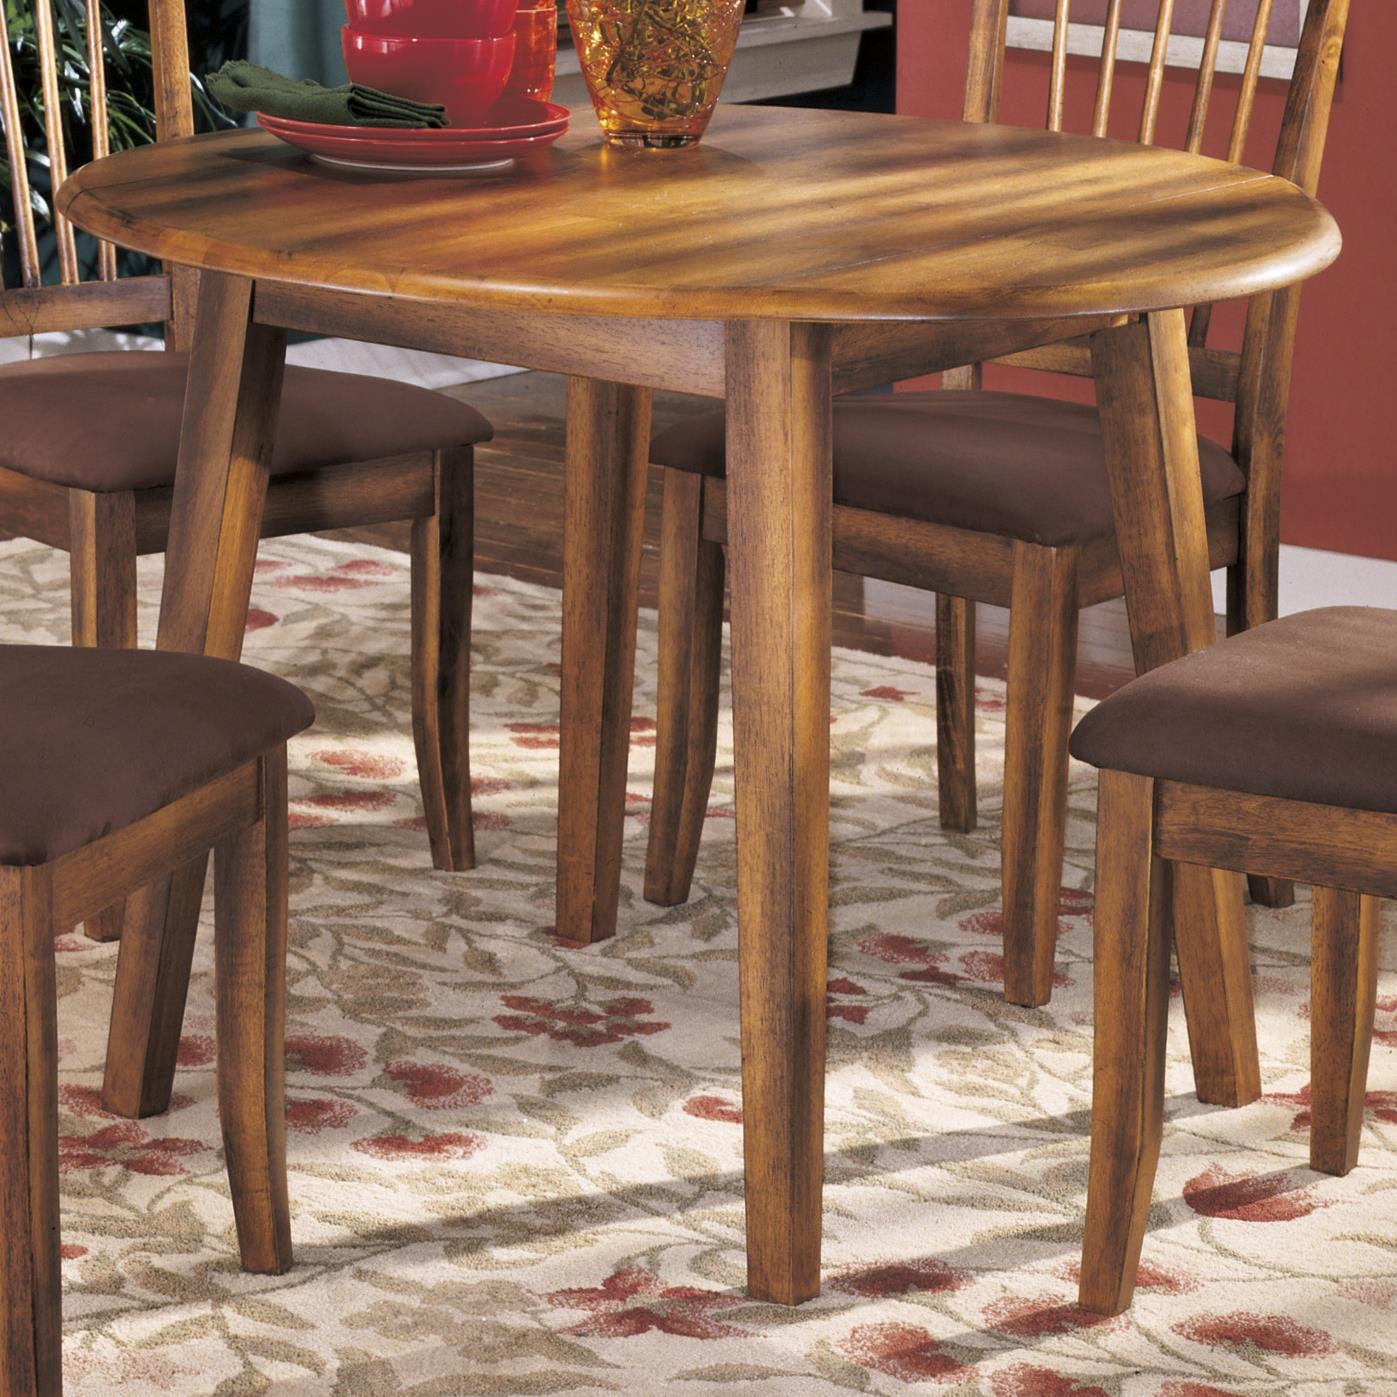 ashley furniture kitchen table and chairs chip cabinets berringer hickory stained hardwood round